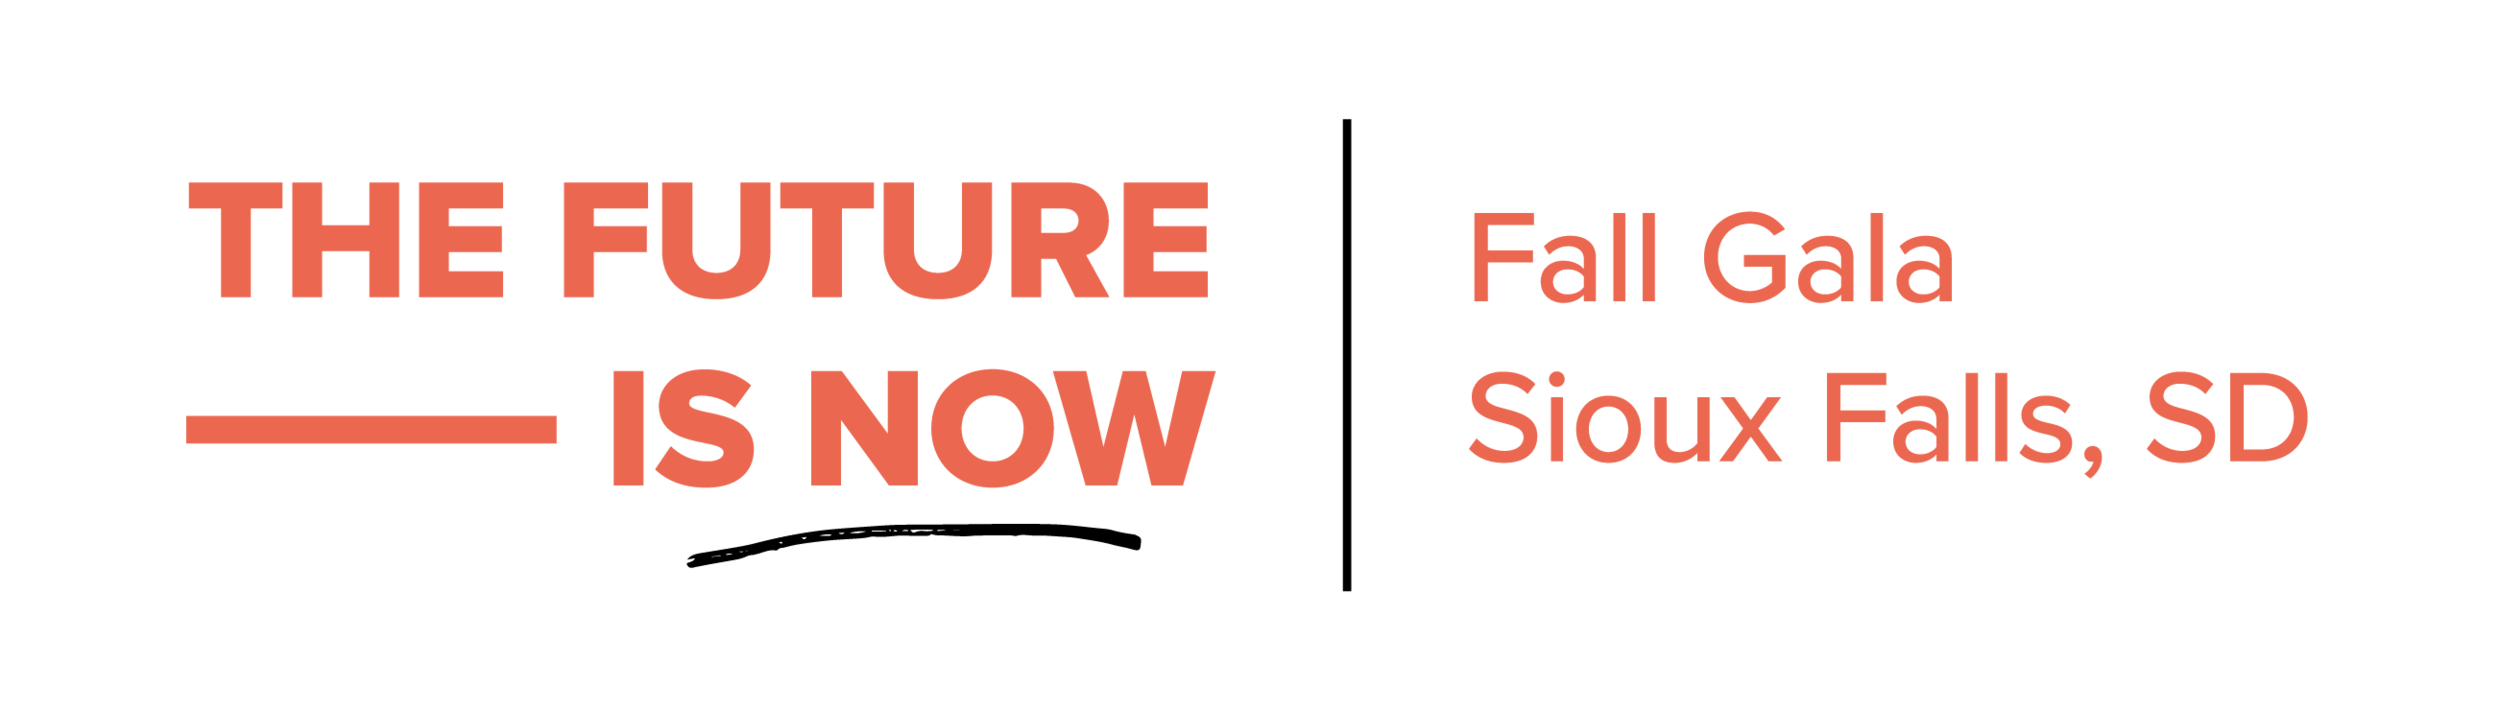 The Future is Now Logo_SD Horizontal - 4C.png